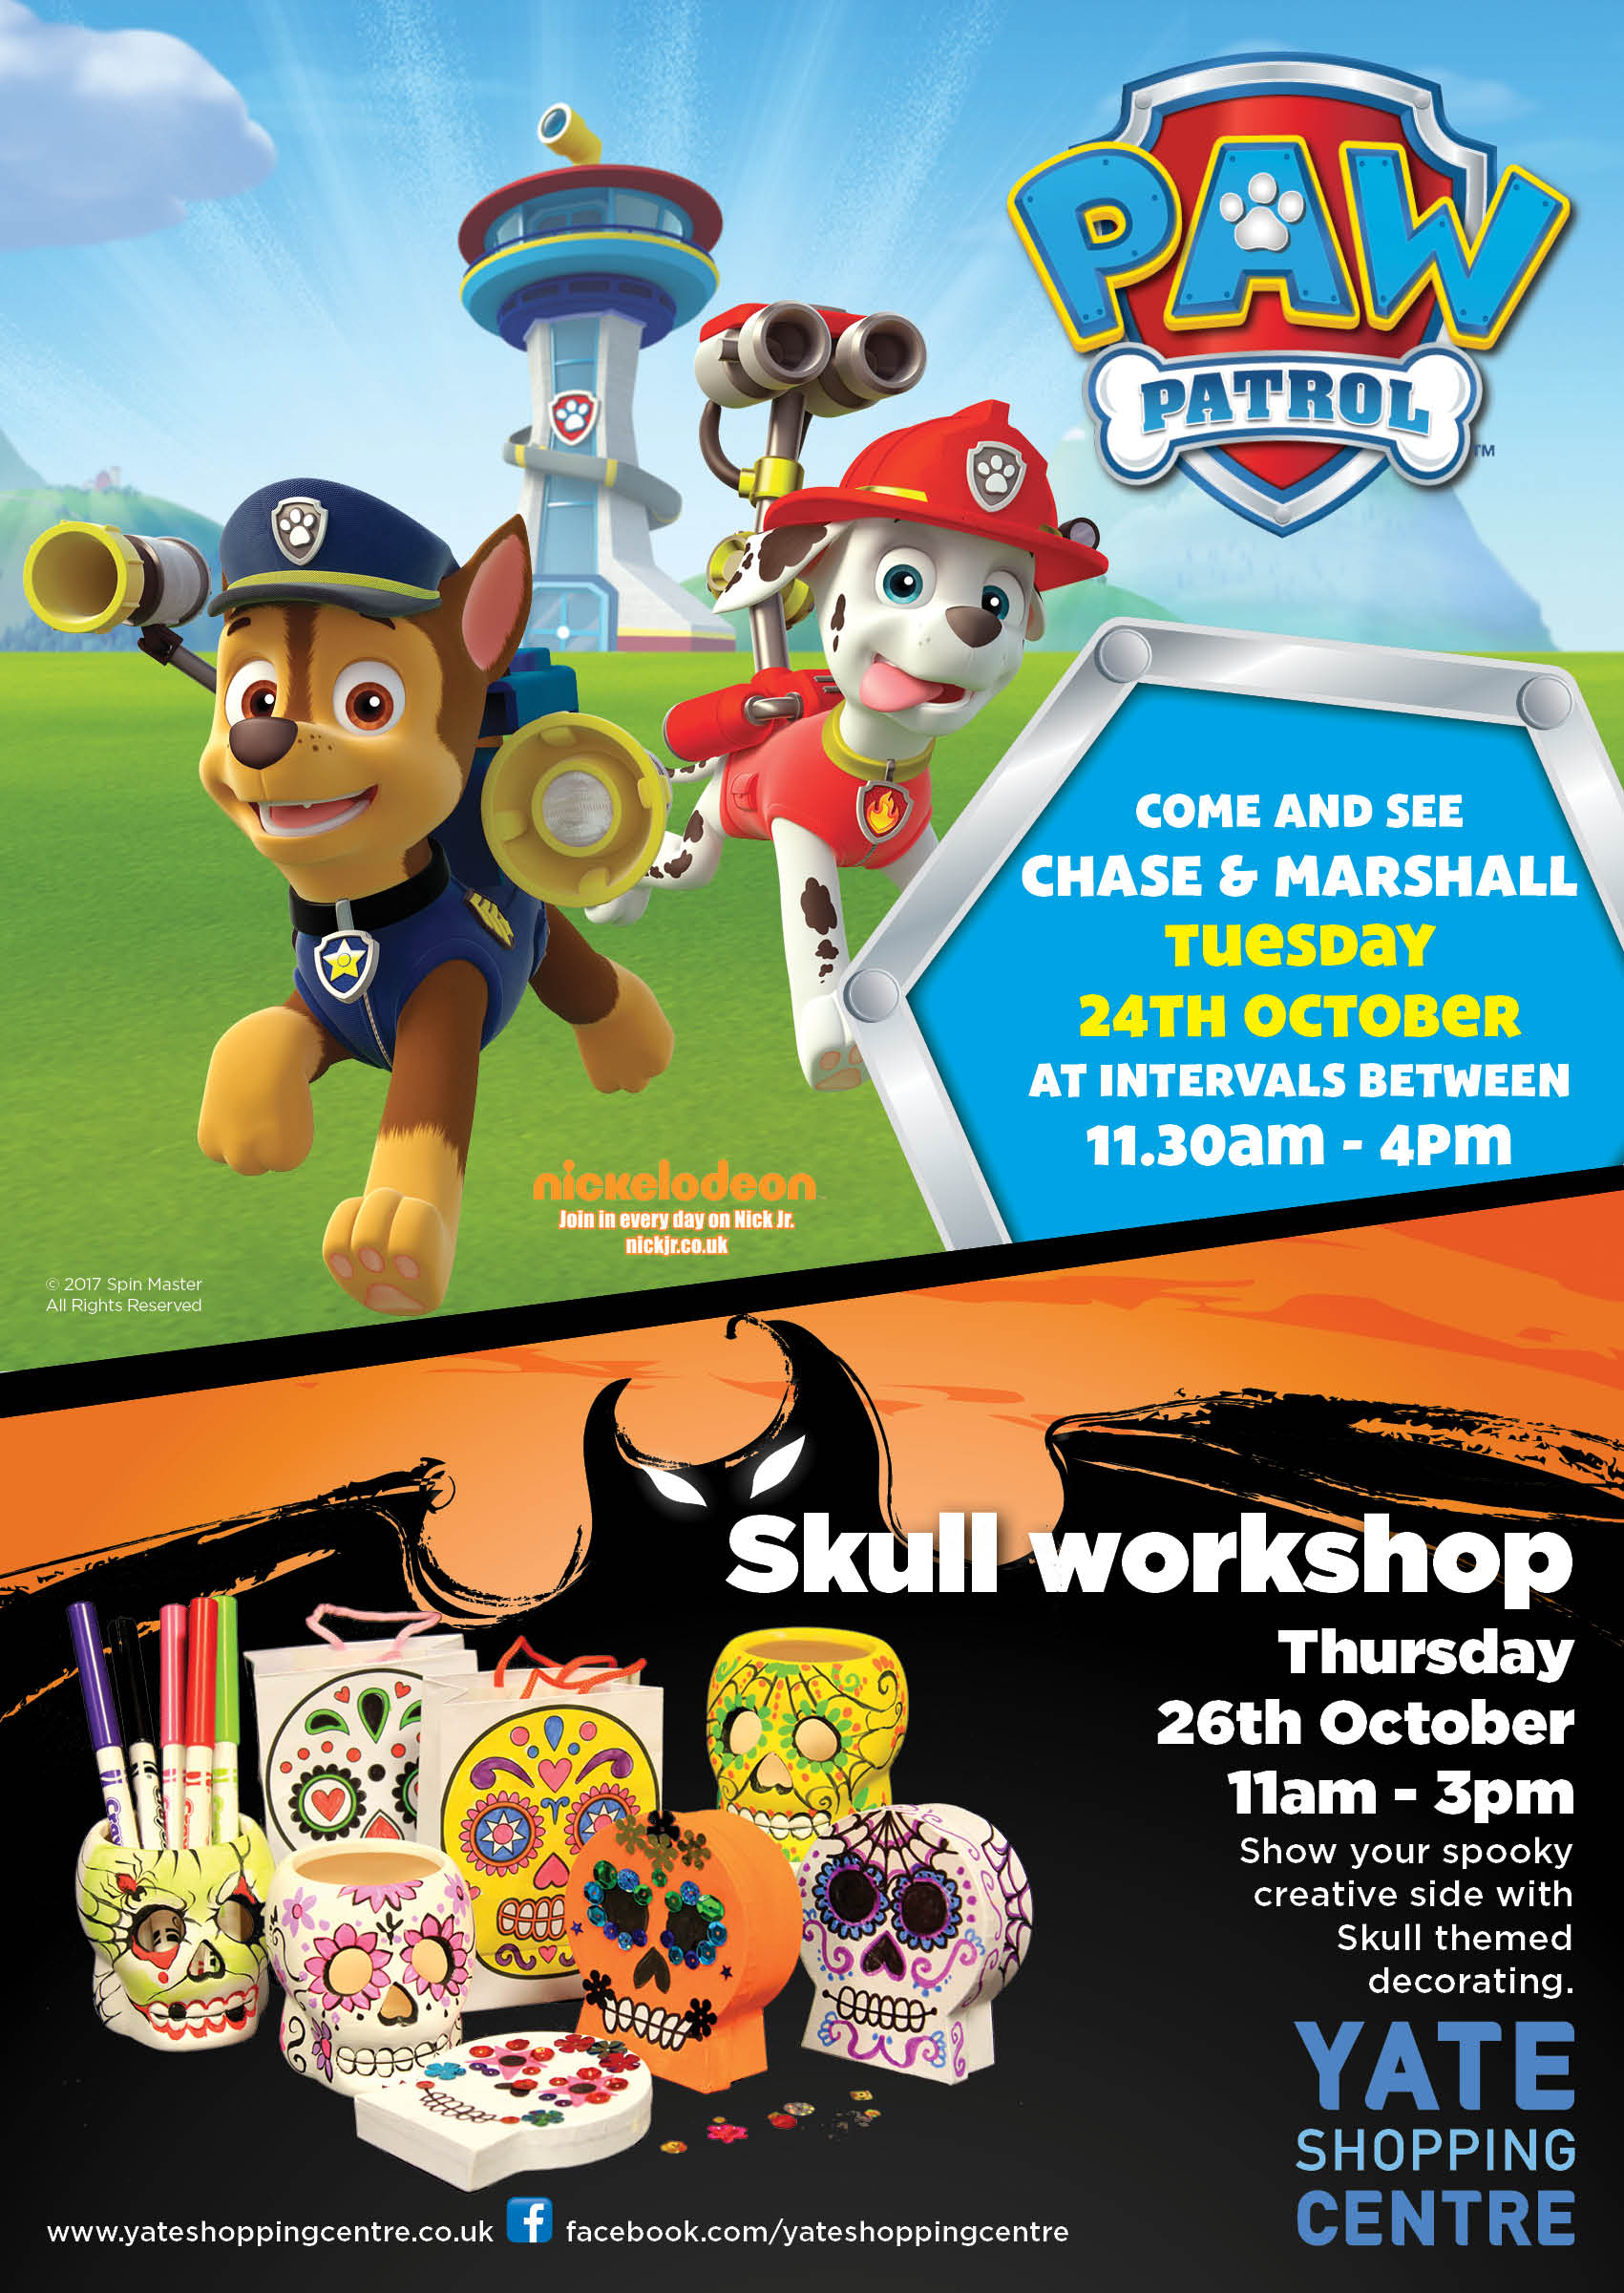 Meet Marshall and Chase from Paw Patrol 24th October 2017